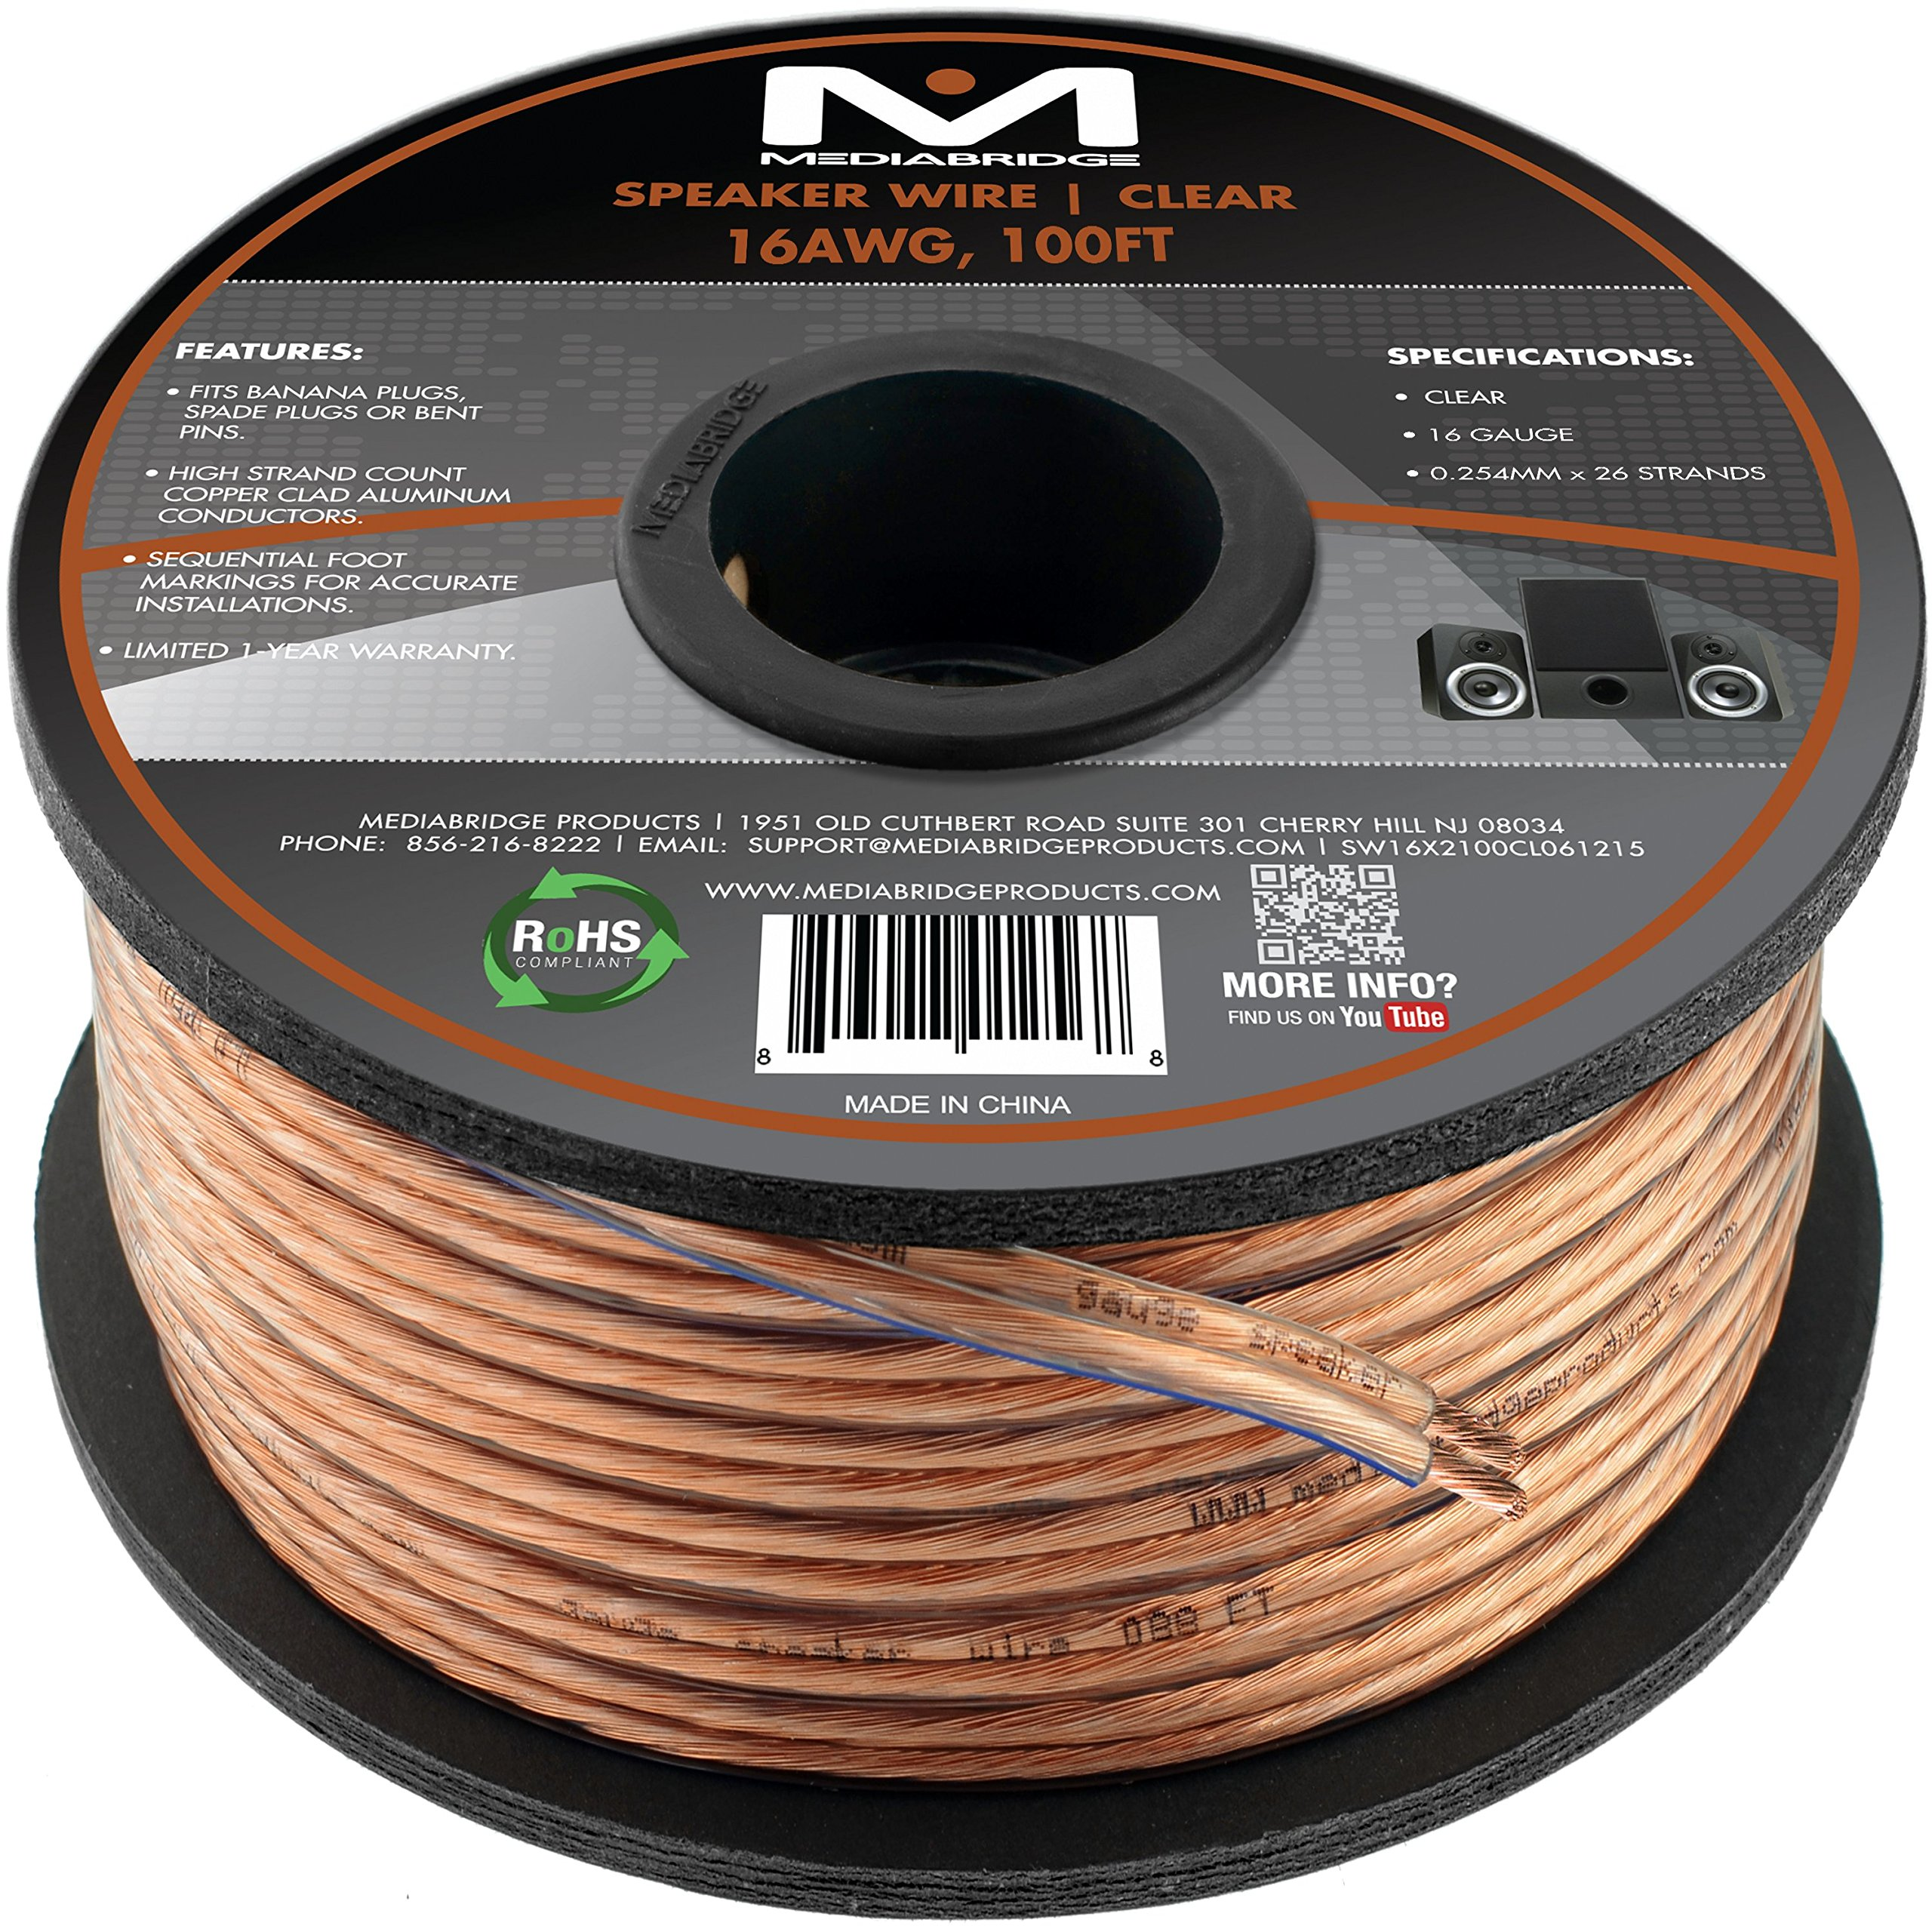 Mediabridge 16AWG 2-Conductor Speaker Wire (100 Feet, Clear) - Spooled Design with Sequential Foot Markings (Part# SW-16X2-100-CL) by Mediabridge